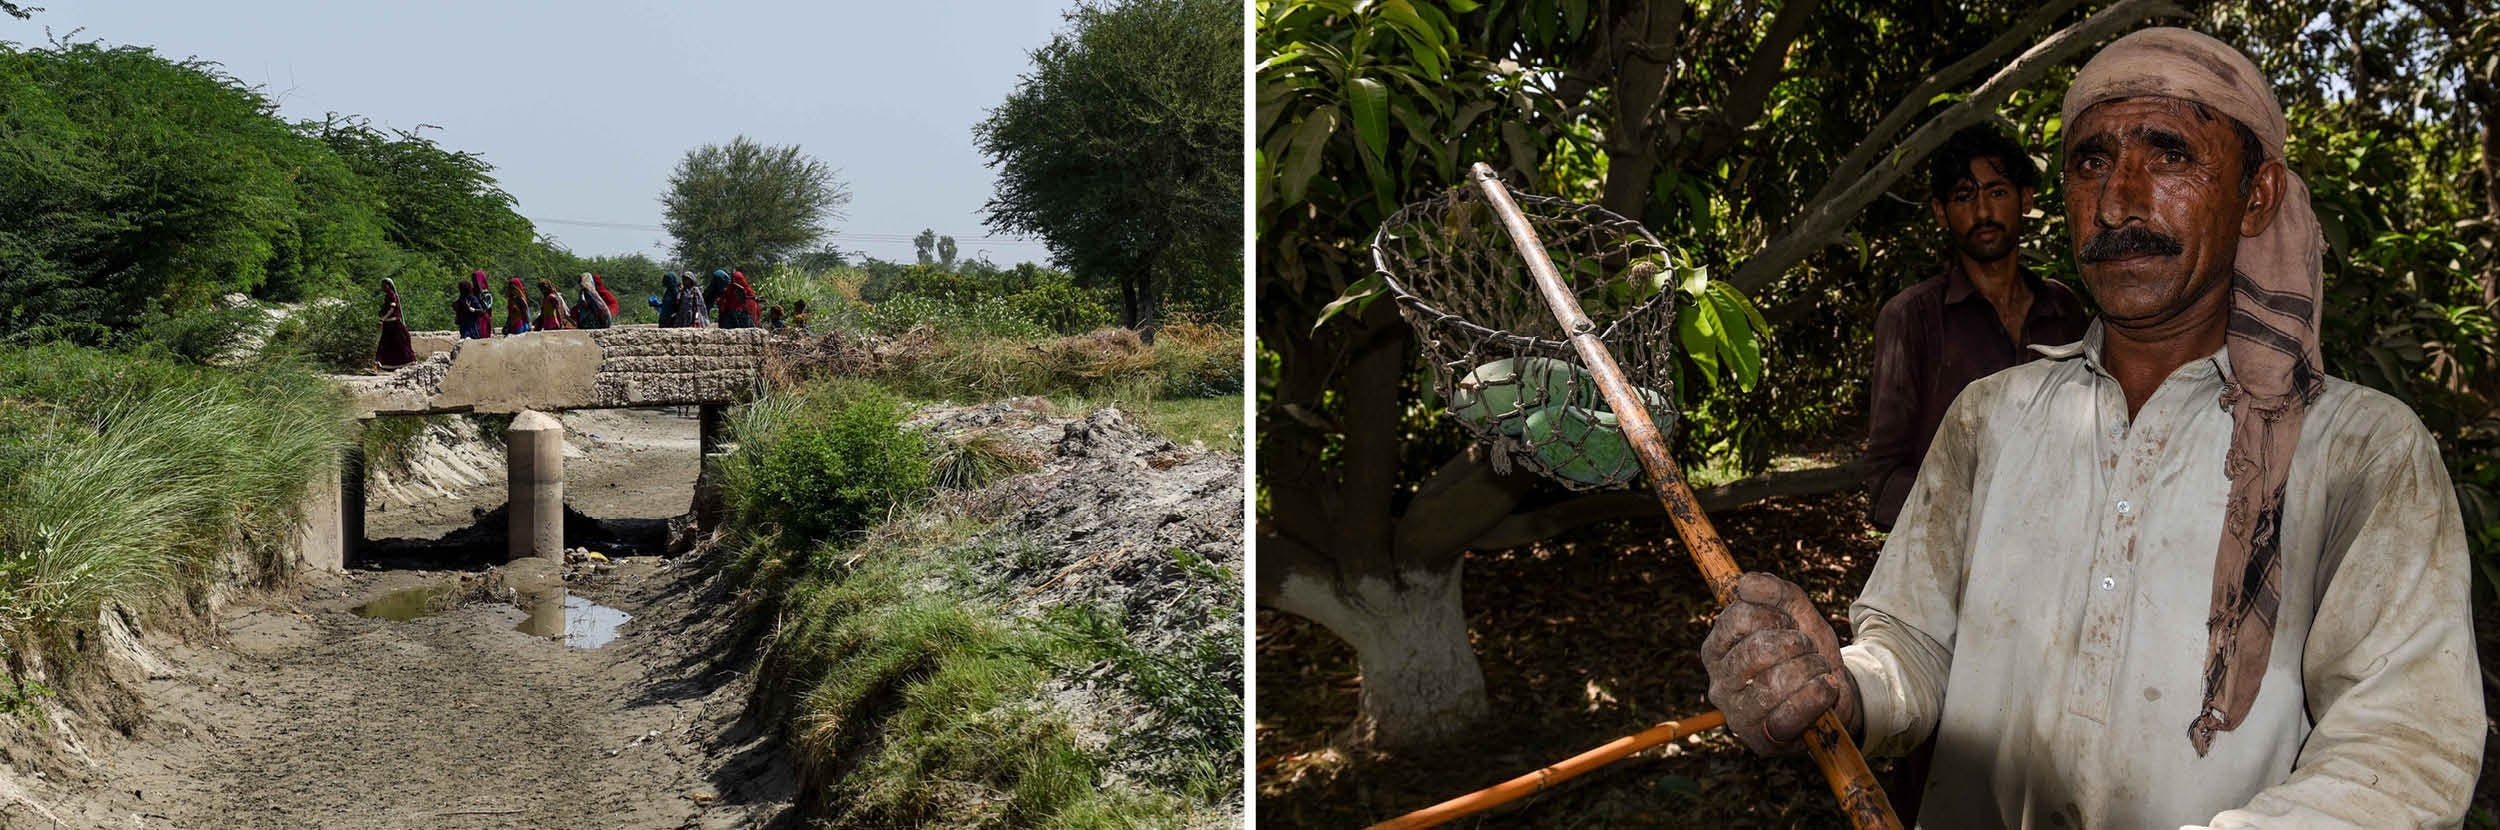 A dried up canal in Kot Ghulam Muhammad taluka, Mirpurkhas district (left), a seasonal labourer catches mangoes passed down by a picker on a tree at Kachelo Fruit Farms (right)